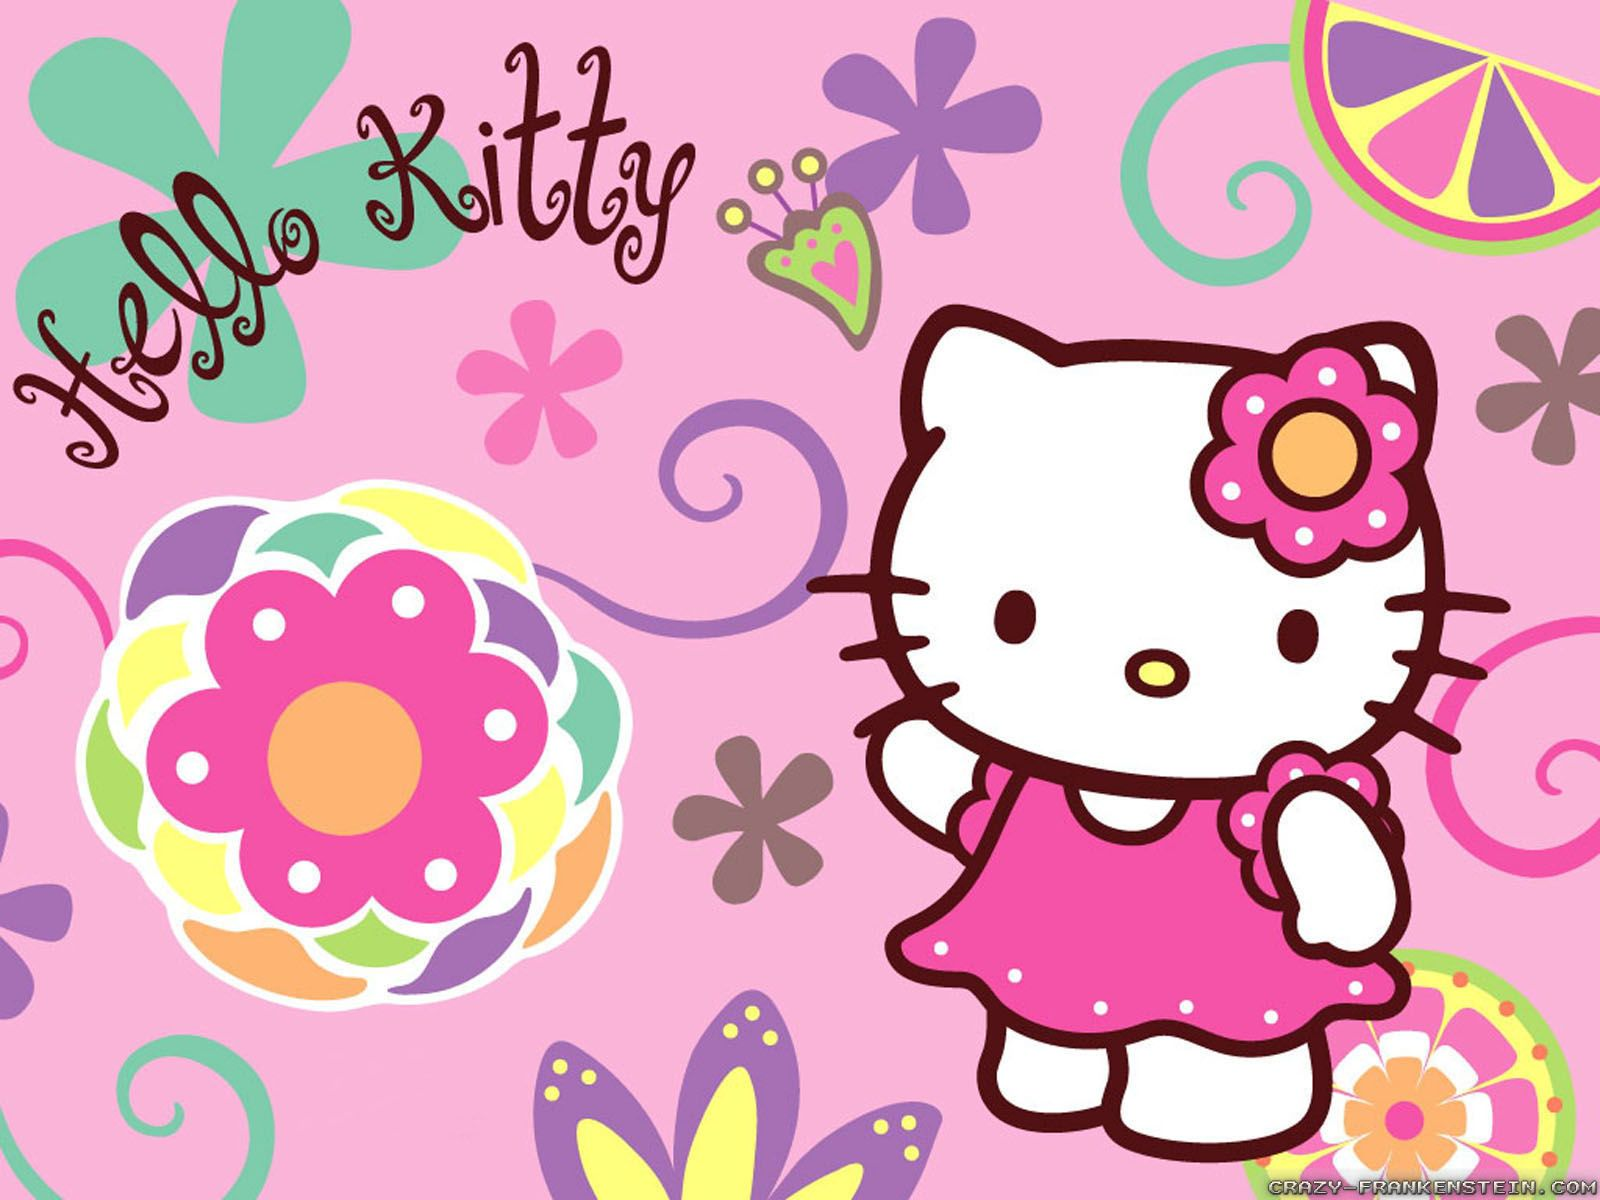 Hello kitty wallpaper for tablet wallpapersafari hello kitty wallpapers for tablet 1600x1200 voltagebd Gallery